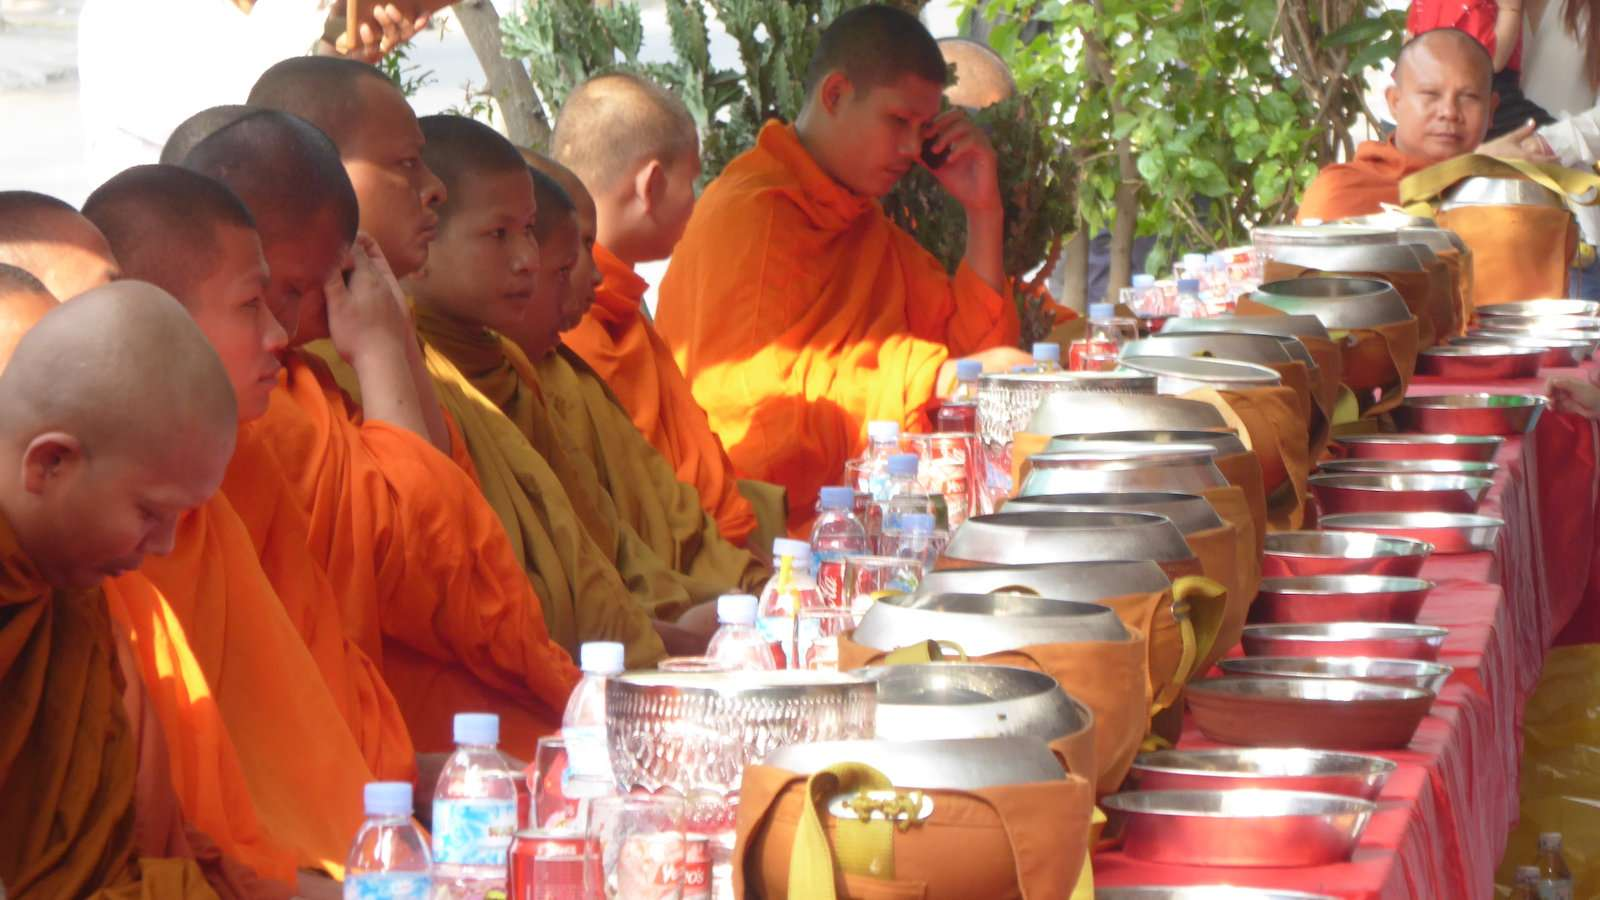 Buddhism is the official religion of Cambodia with around 95% of the population practicing it!